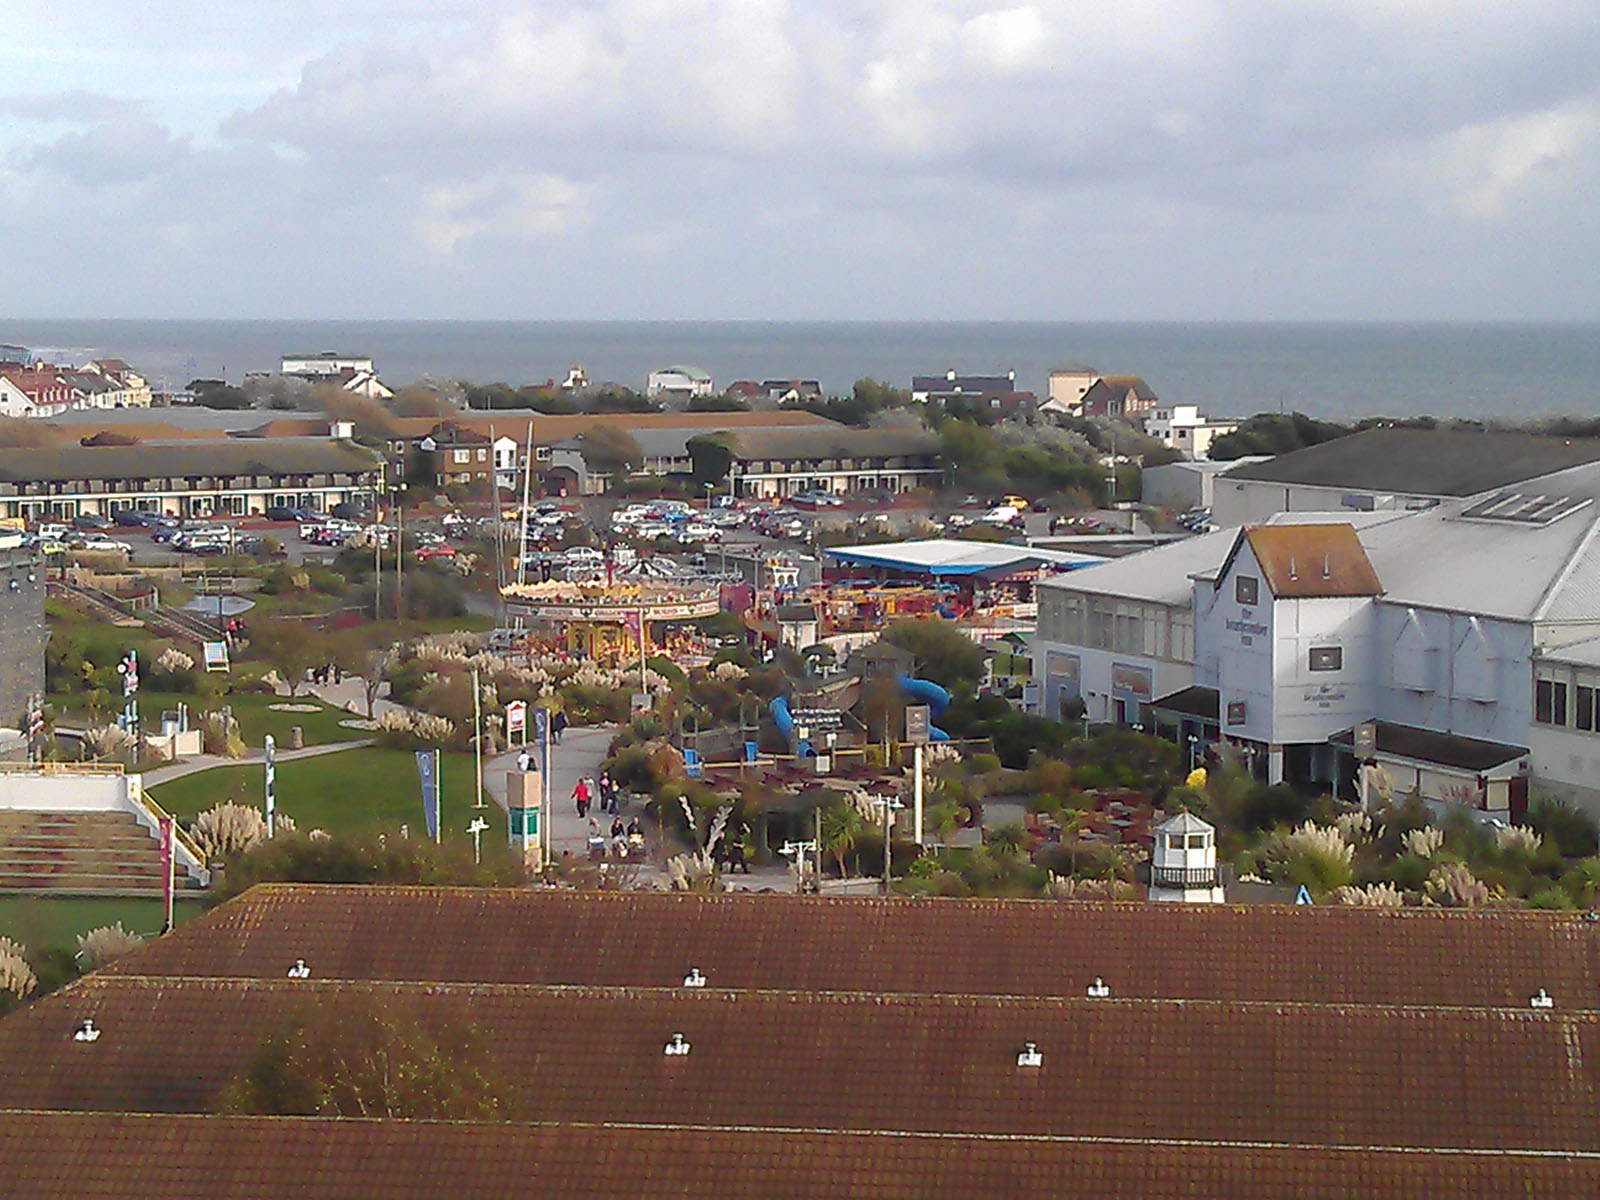 Bognor Regis Butlins funfair as seen from the air.